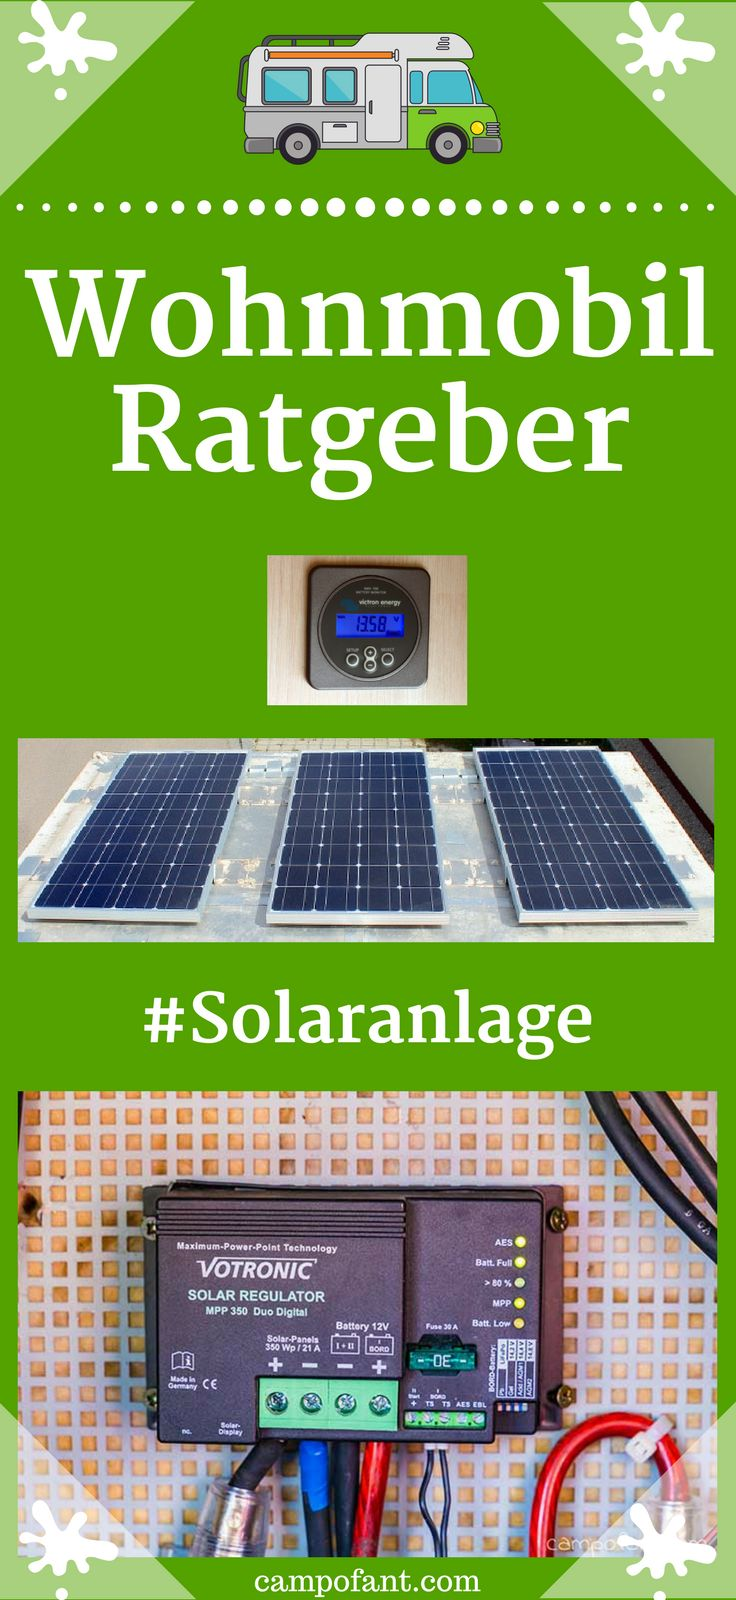 wohnmobil solaranlage berechnen mit dem solarrechner rv remodle buses van 39 s and all so. Black Bedroom Furniture Sets. Home Design Ideas